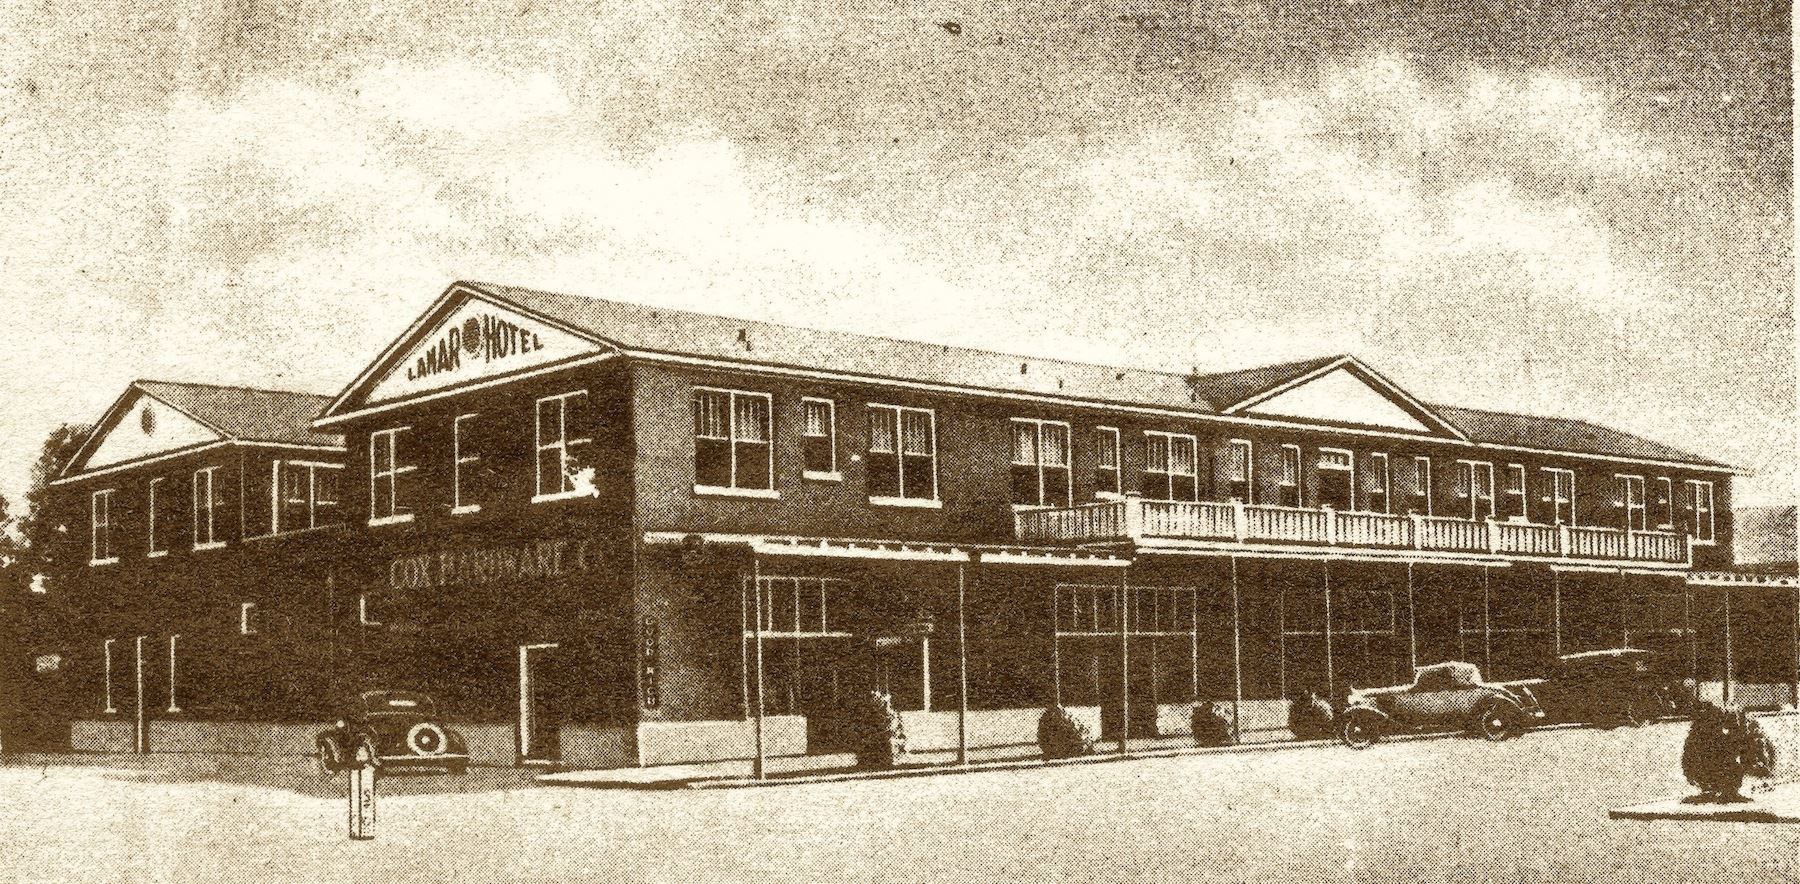 The 1926 Lamar Hotel is now better known as Desi's Restaurant.